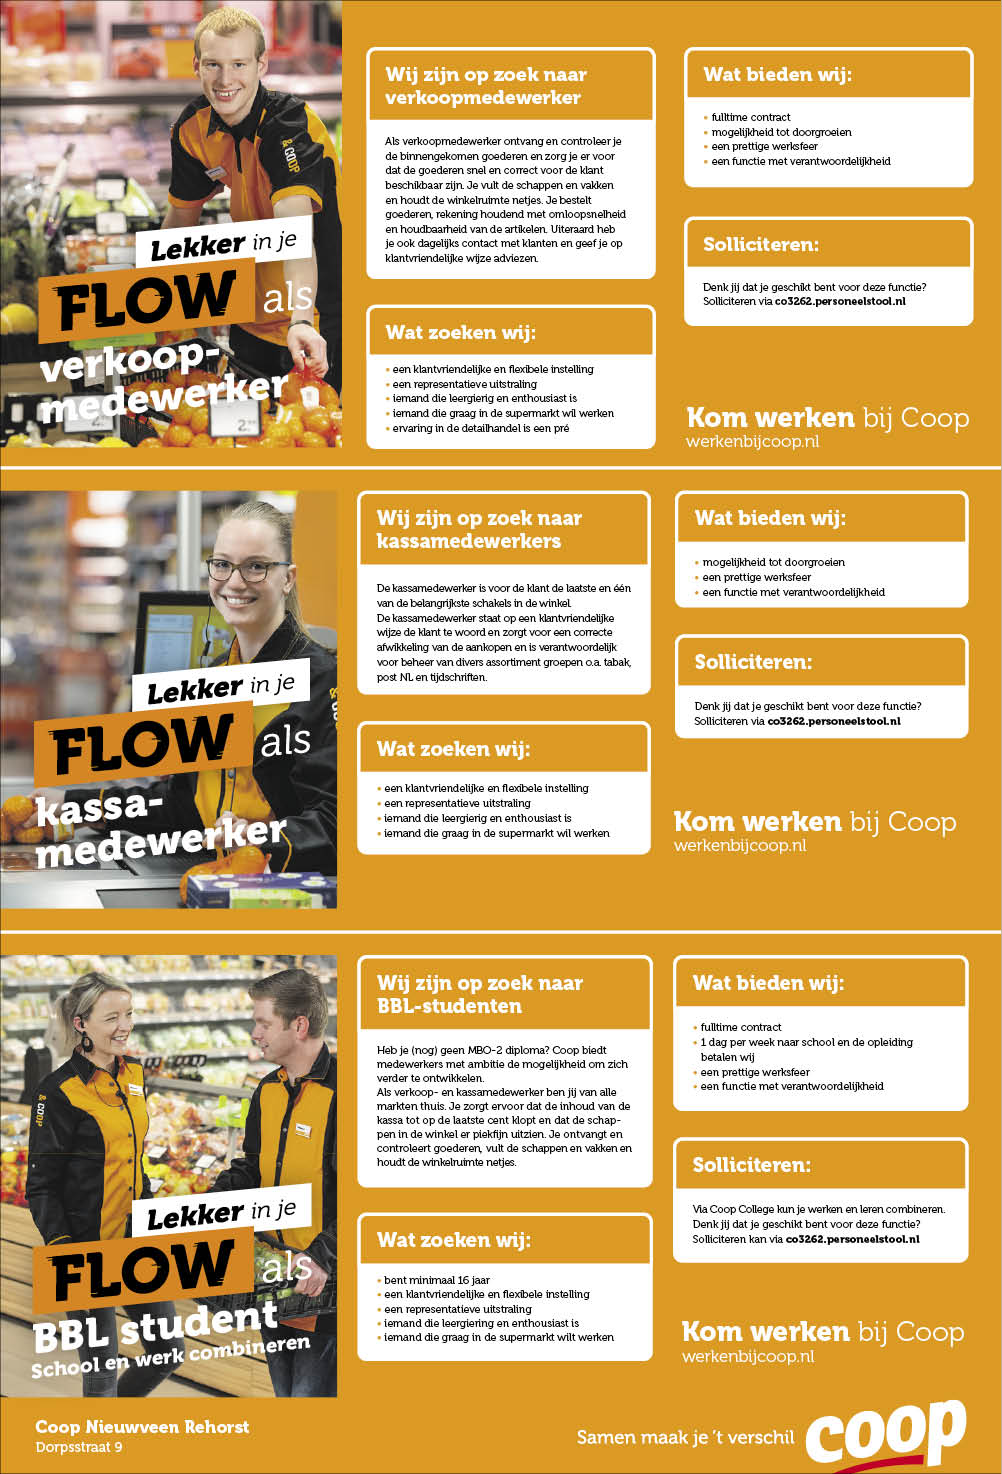 Vacature BBL Student